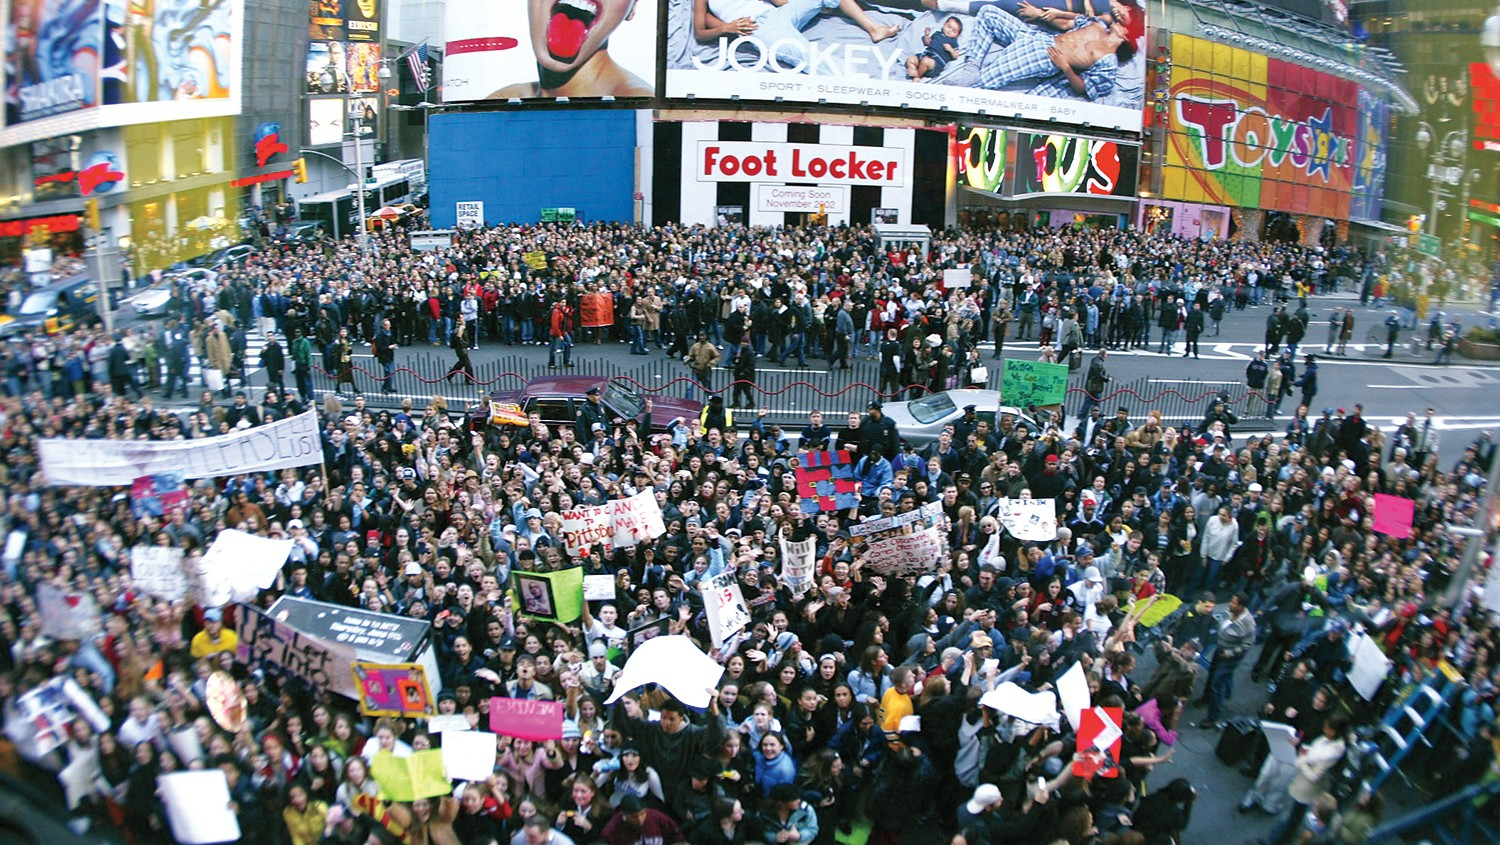 A typical view of the pandemonium outside 1515 Broadway during a TRL taping — this time for Eminem in November 2002, when he was promoting his acting debut in 8 Mile.